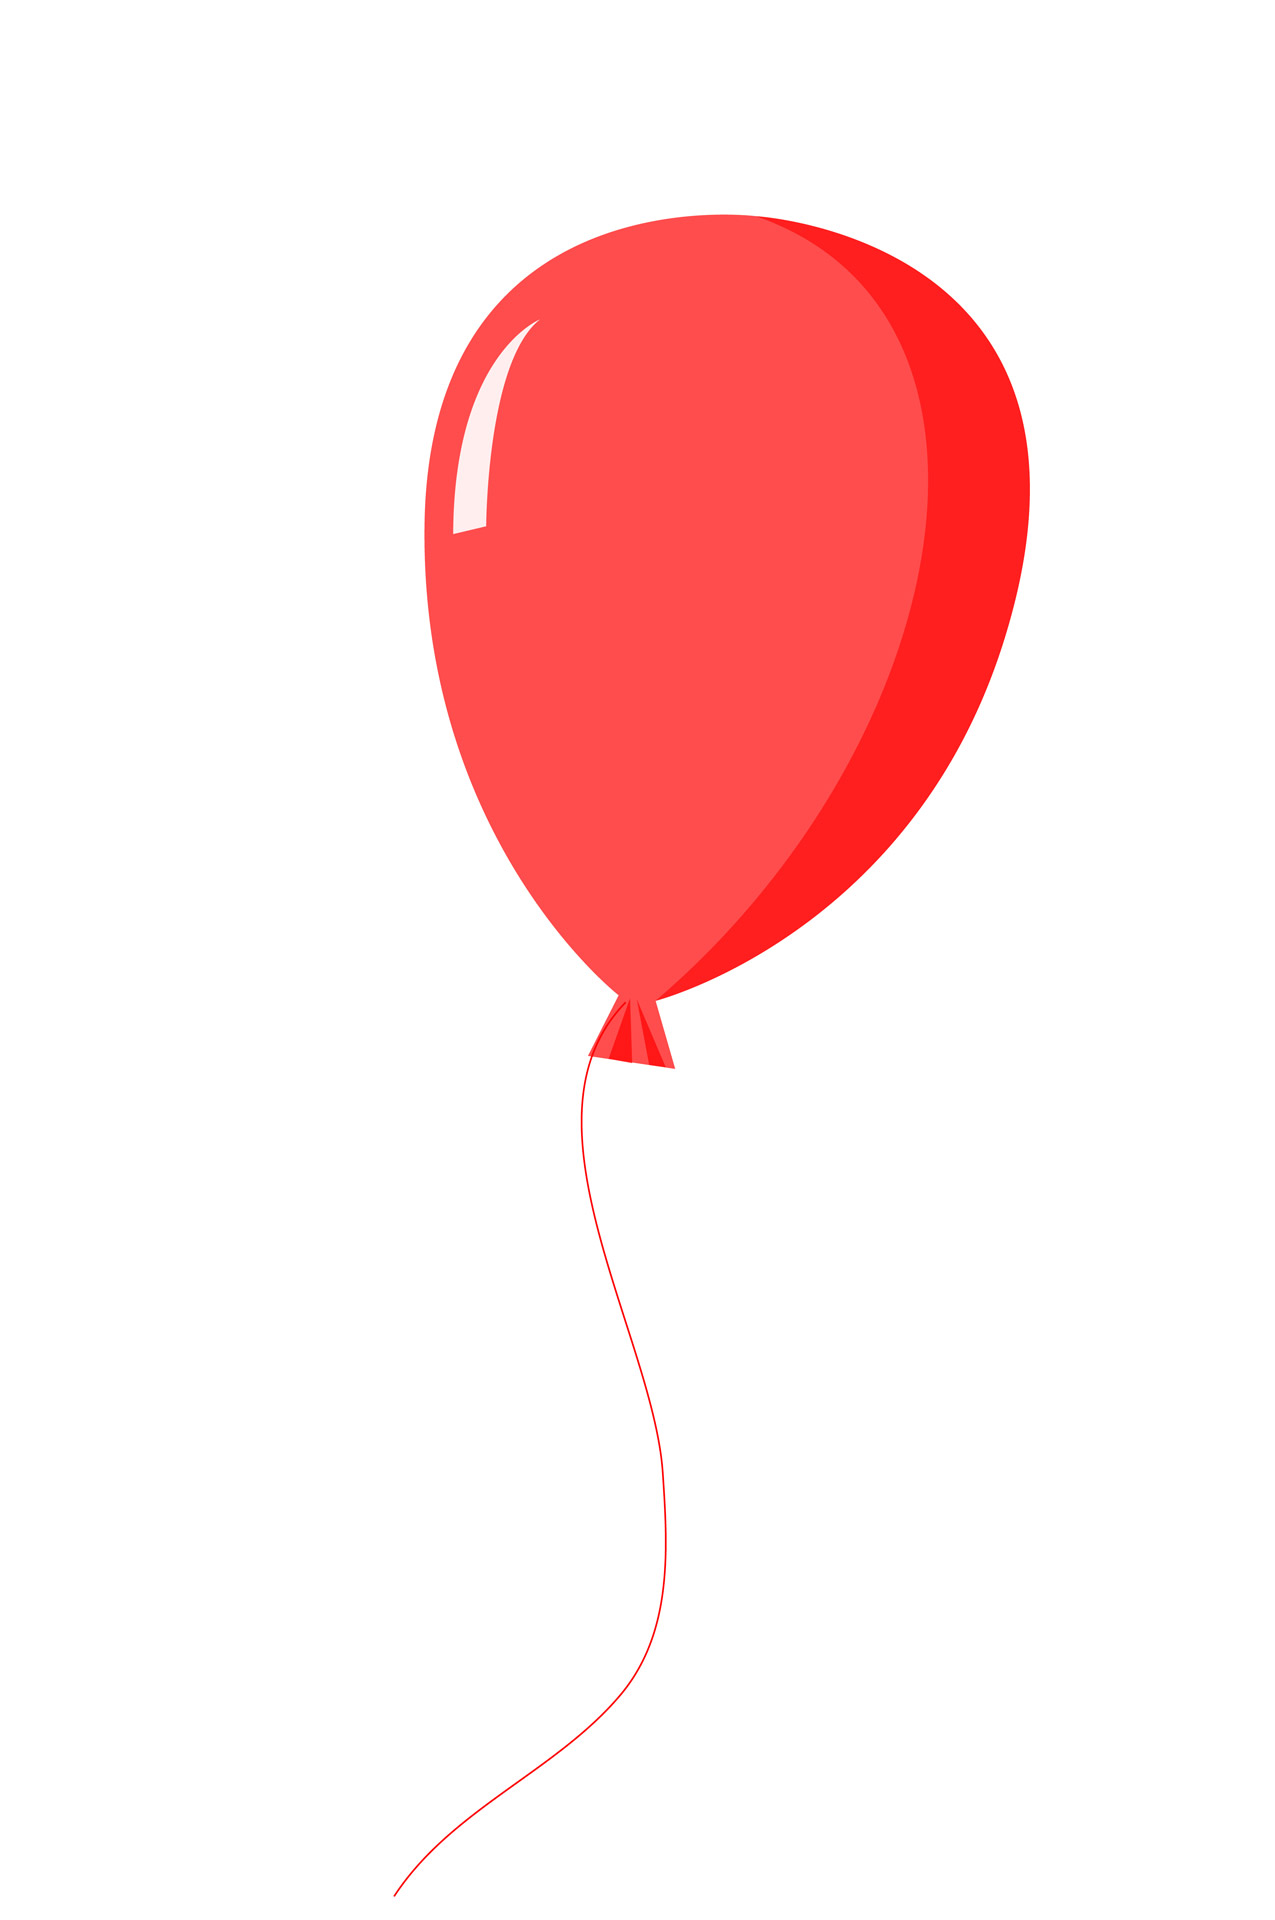 Balloon Clipart - Clipart Kid